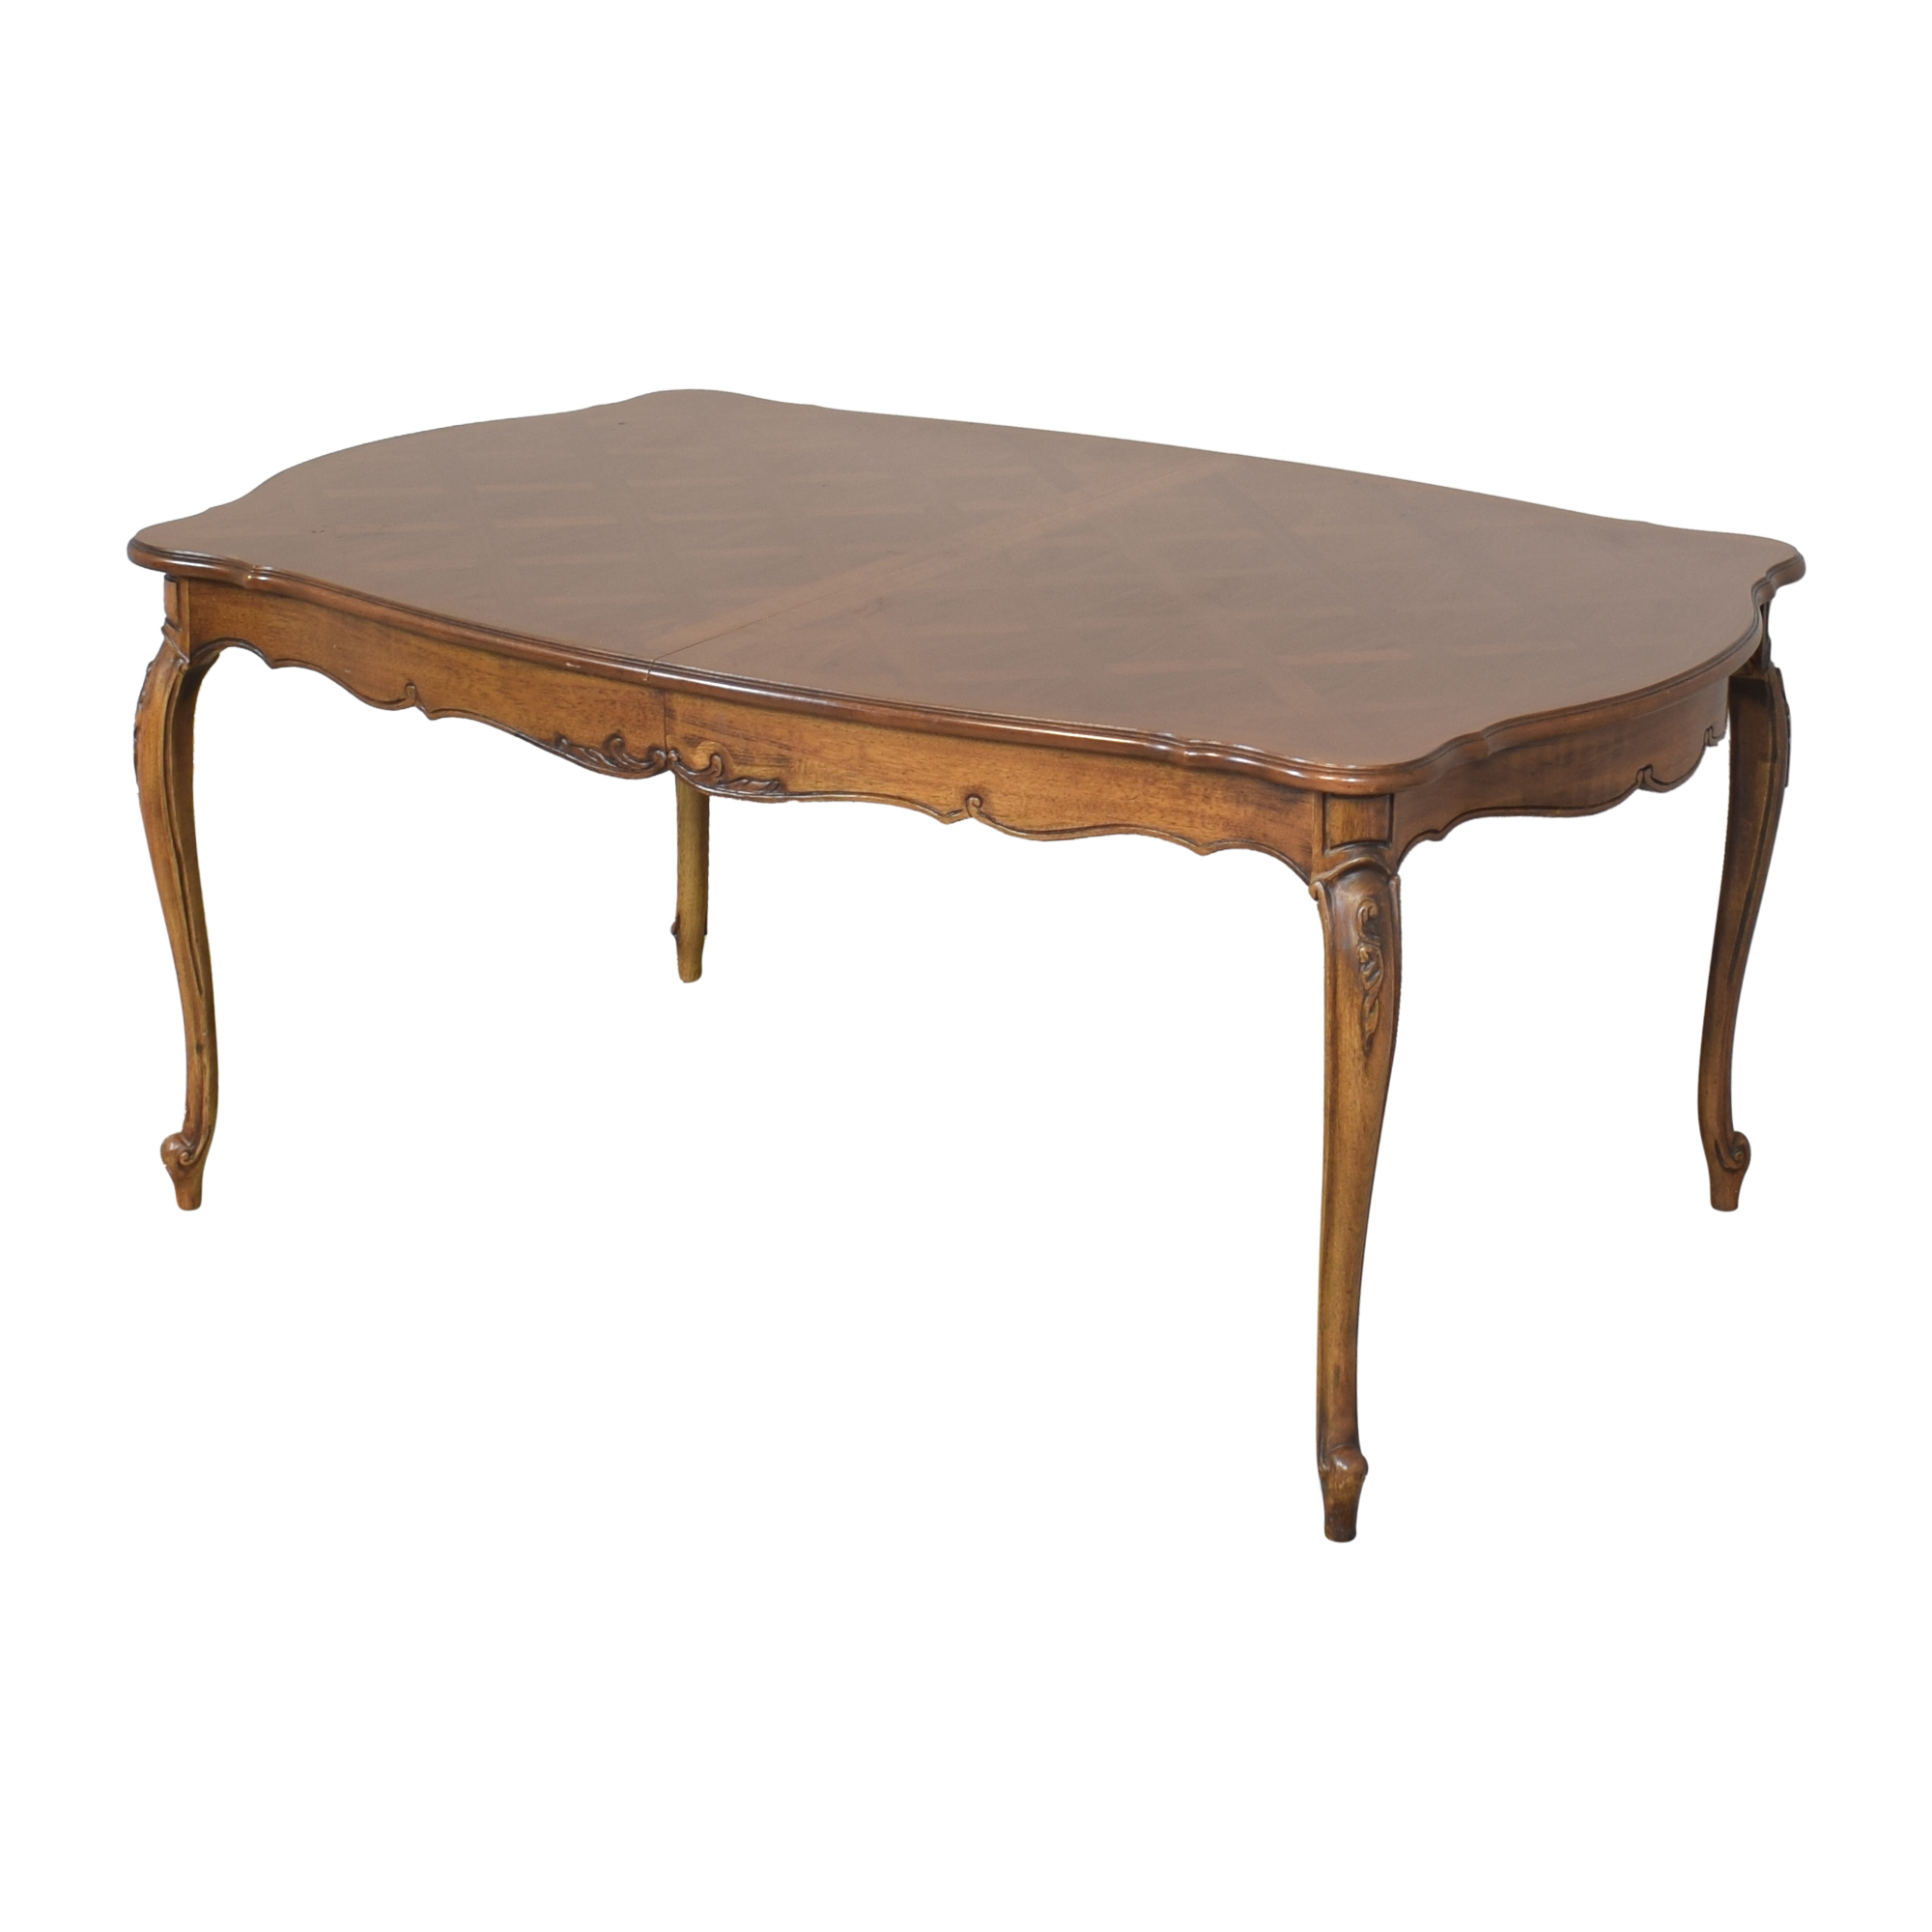 Thomasville Thomasville Expandable Dining Table nyc